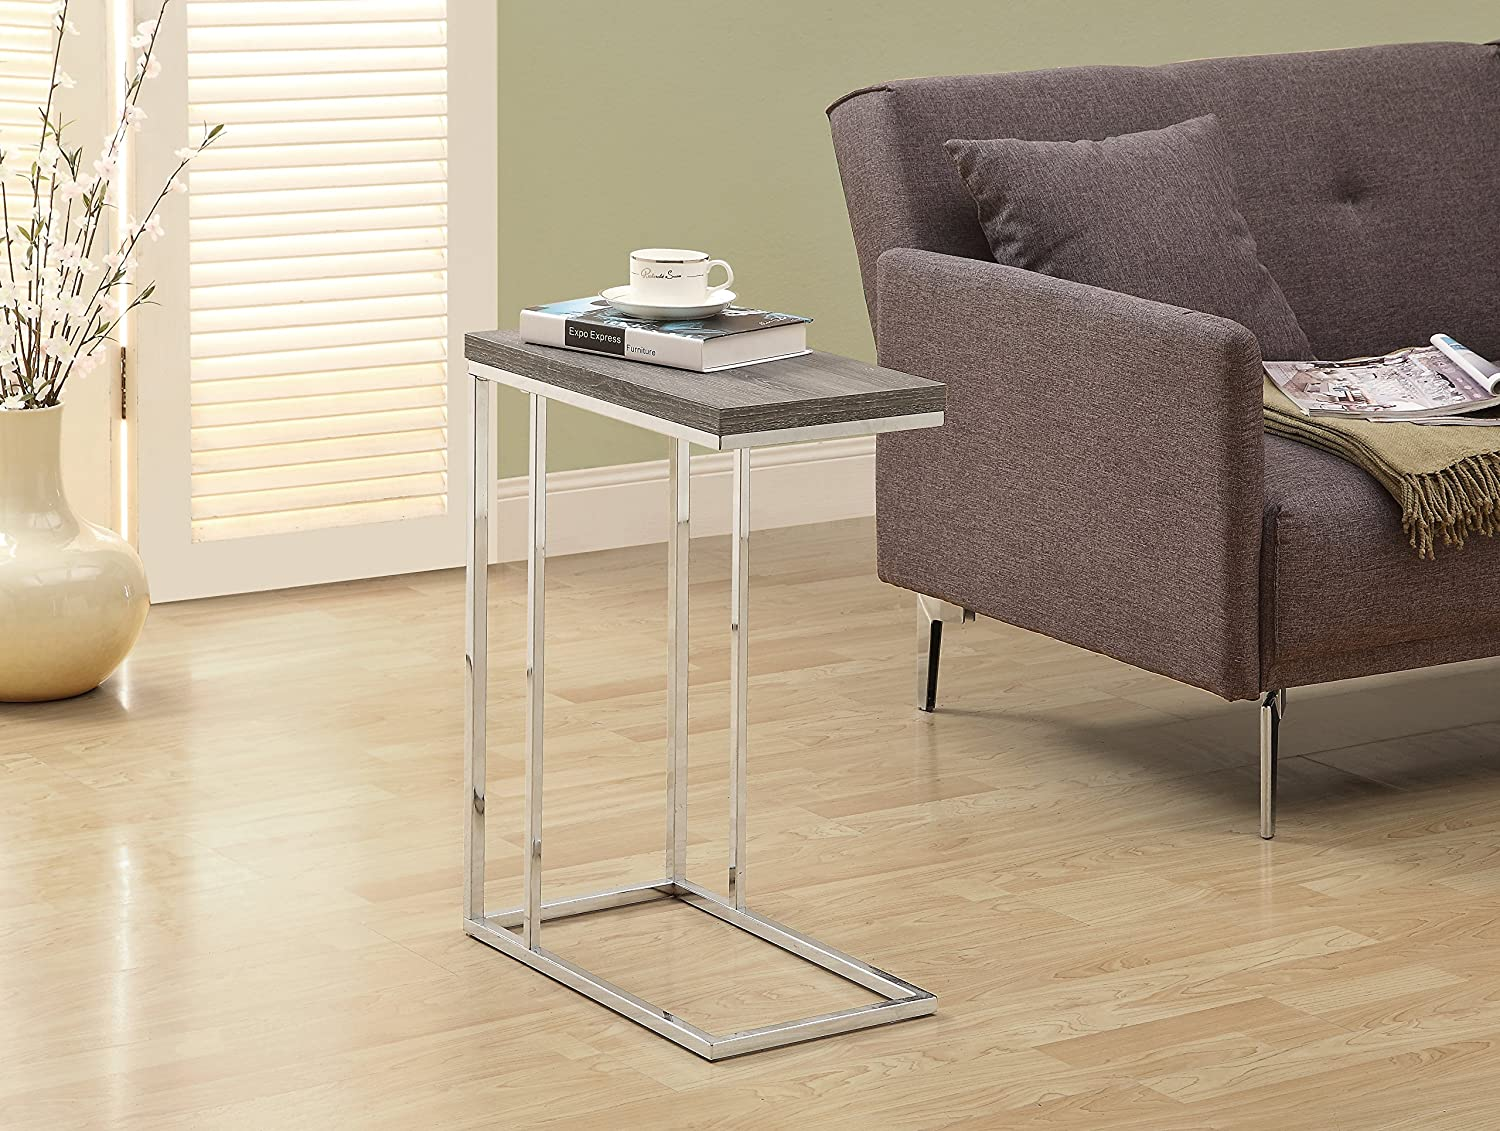 Amazoncom Monarch Specialties I 3008 Accent Table Chrome Metal